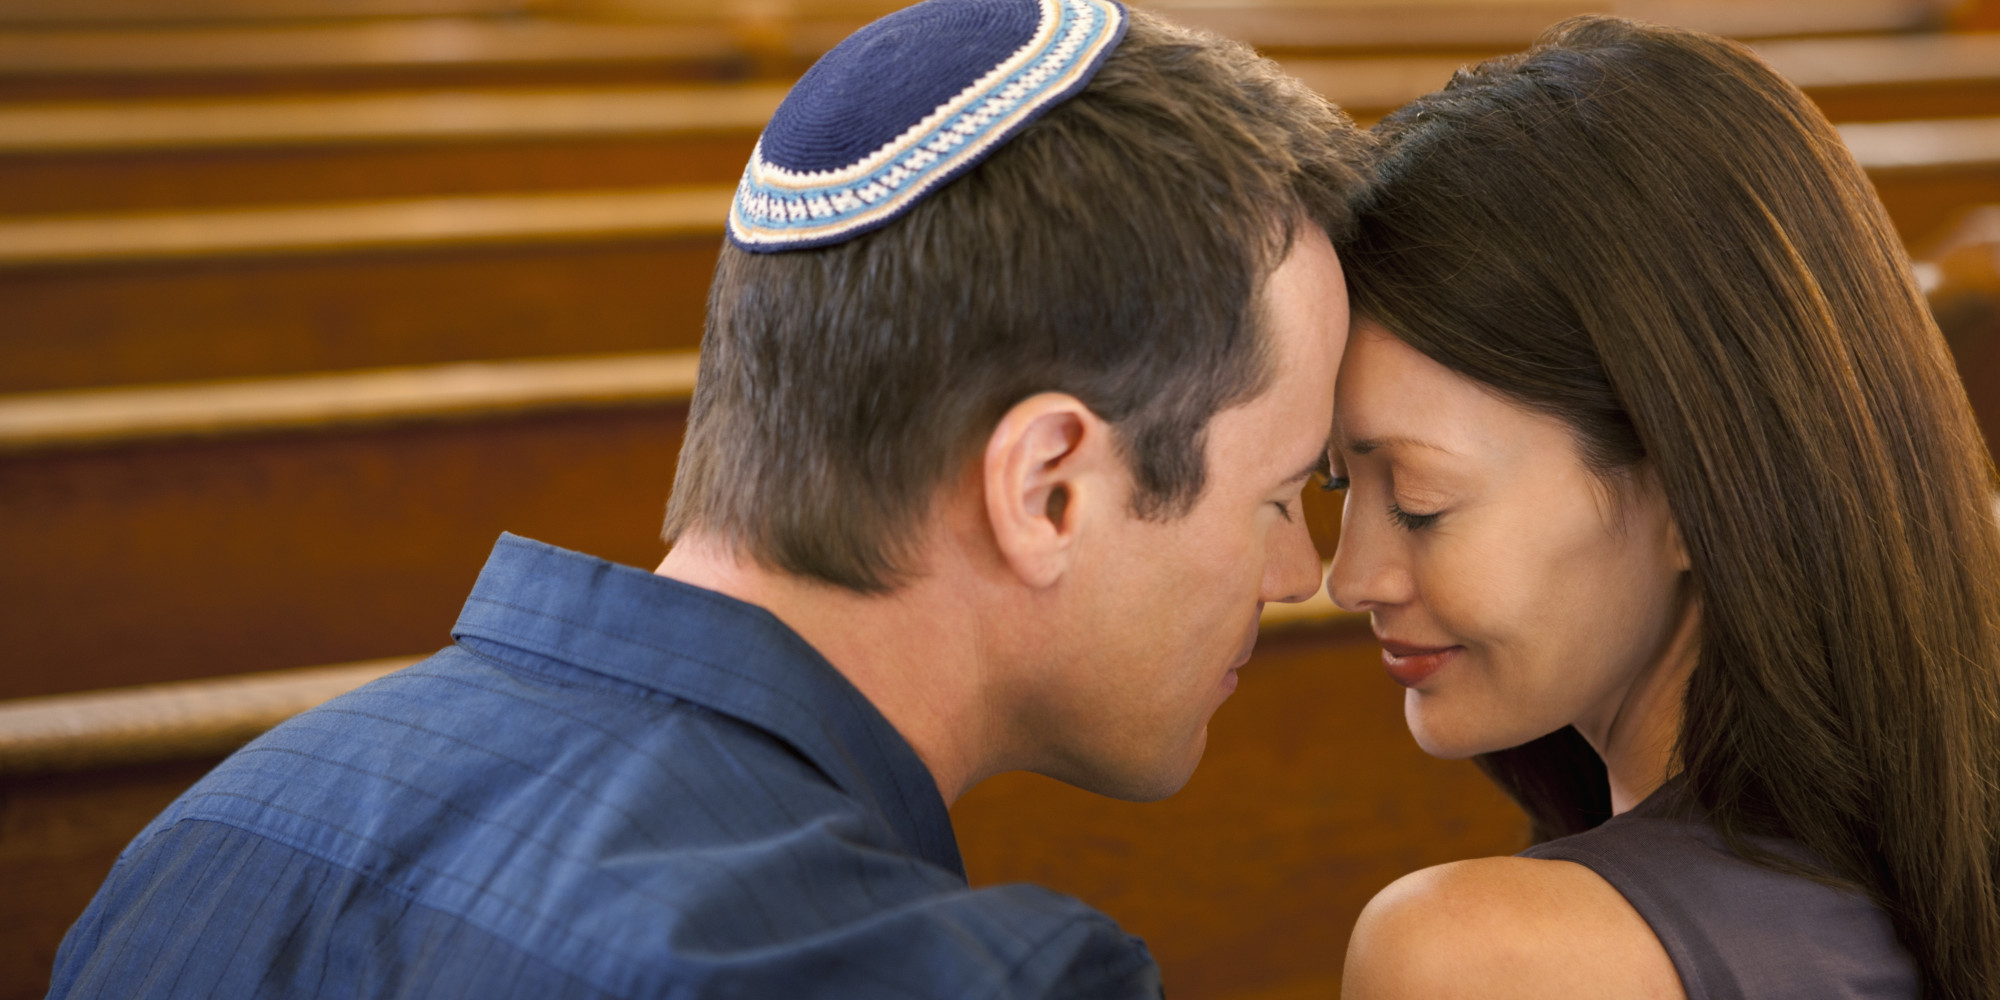 Jewish guys dating non jewish girls